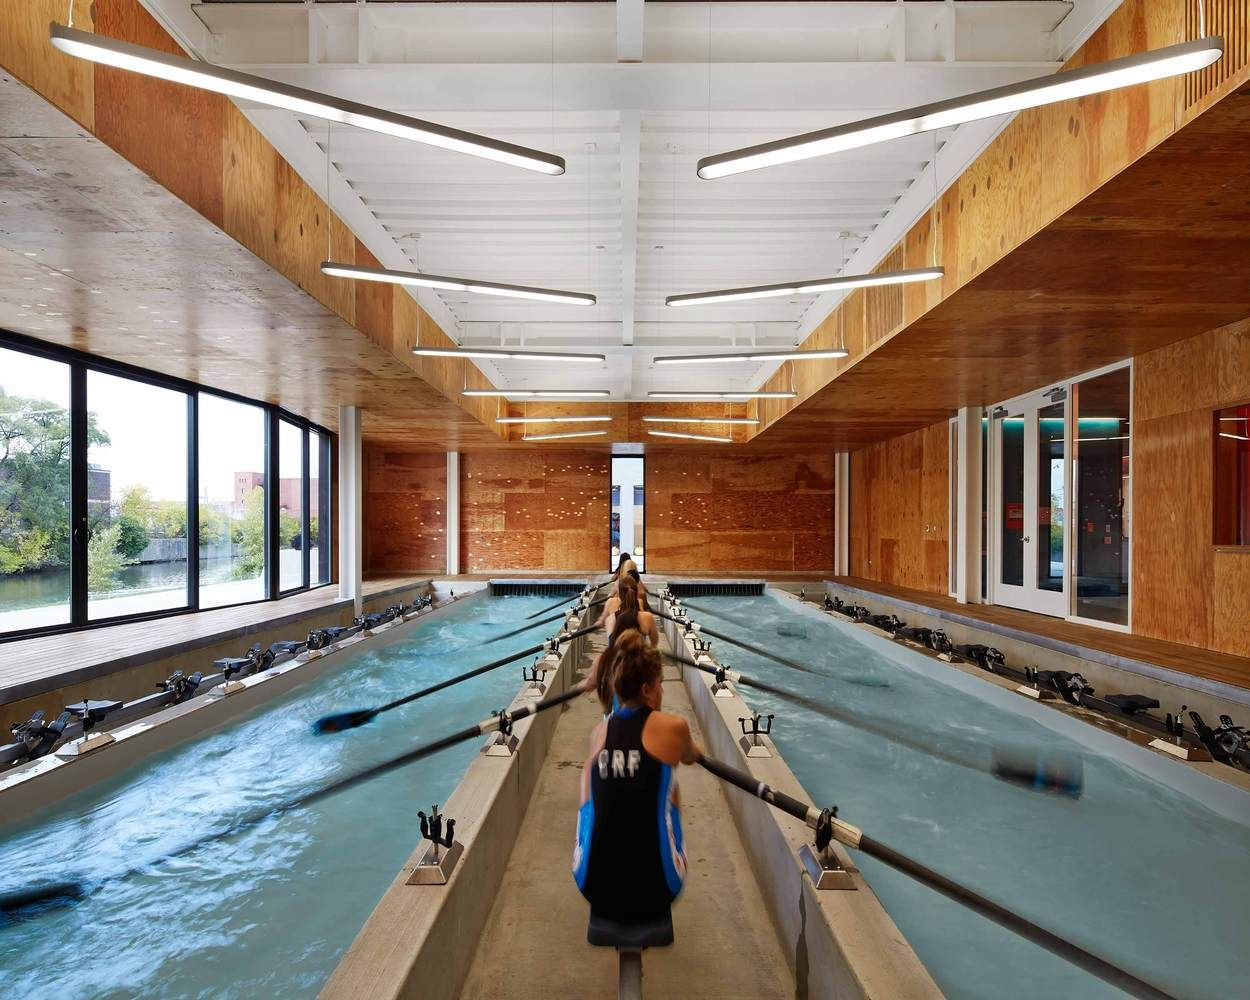 AIA Names 18 Projects As Best New Architecture In US,WMS Boathouse At Clark  Park